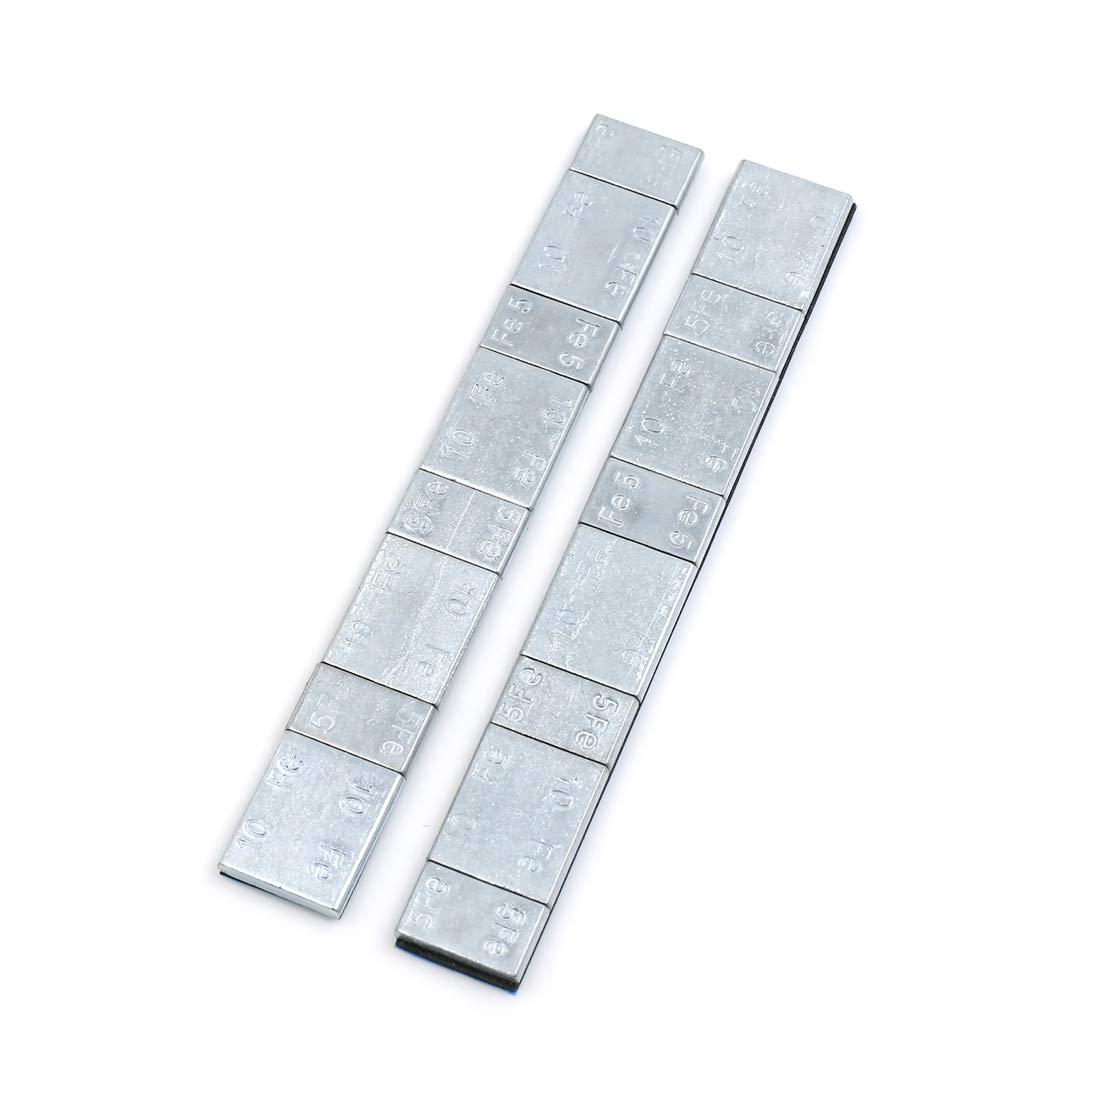 F FIERCE CYCLE 2.1oz Adhesive Back Wheel Balance Weights Strips for Motorcycle 134 x 18mm 2pcs